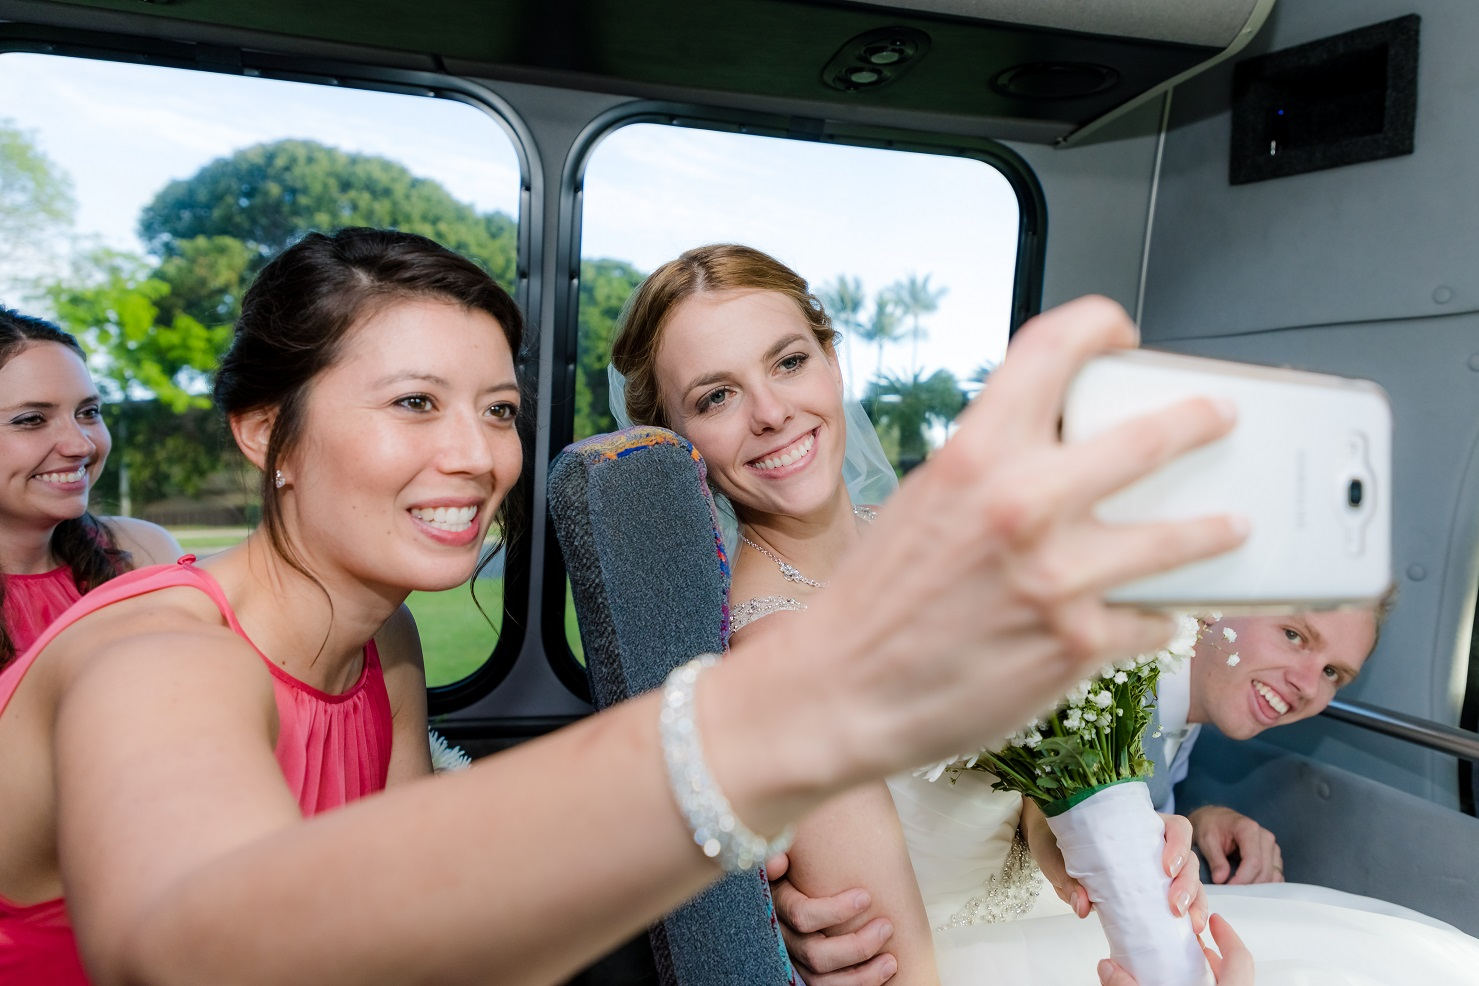 Bridal party bus ride, flashed